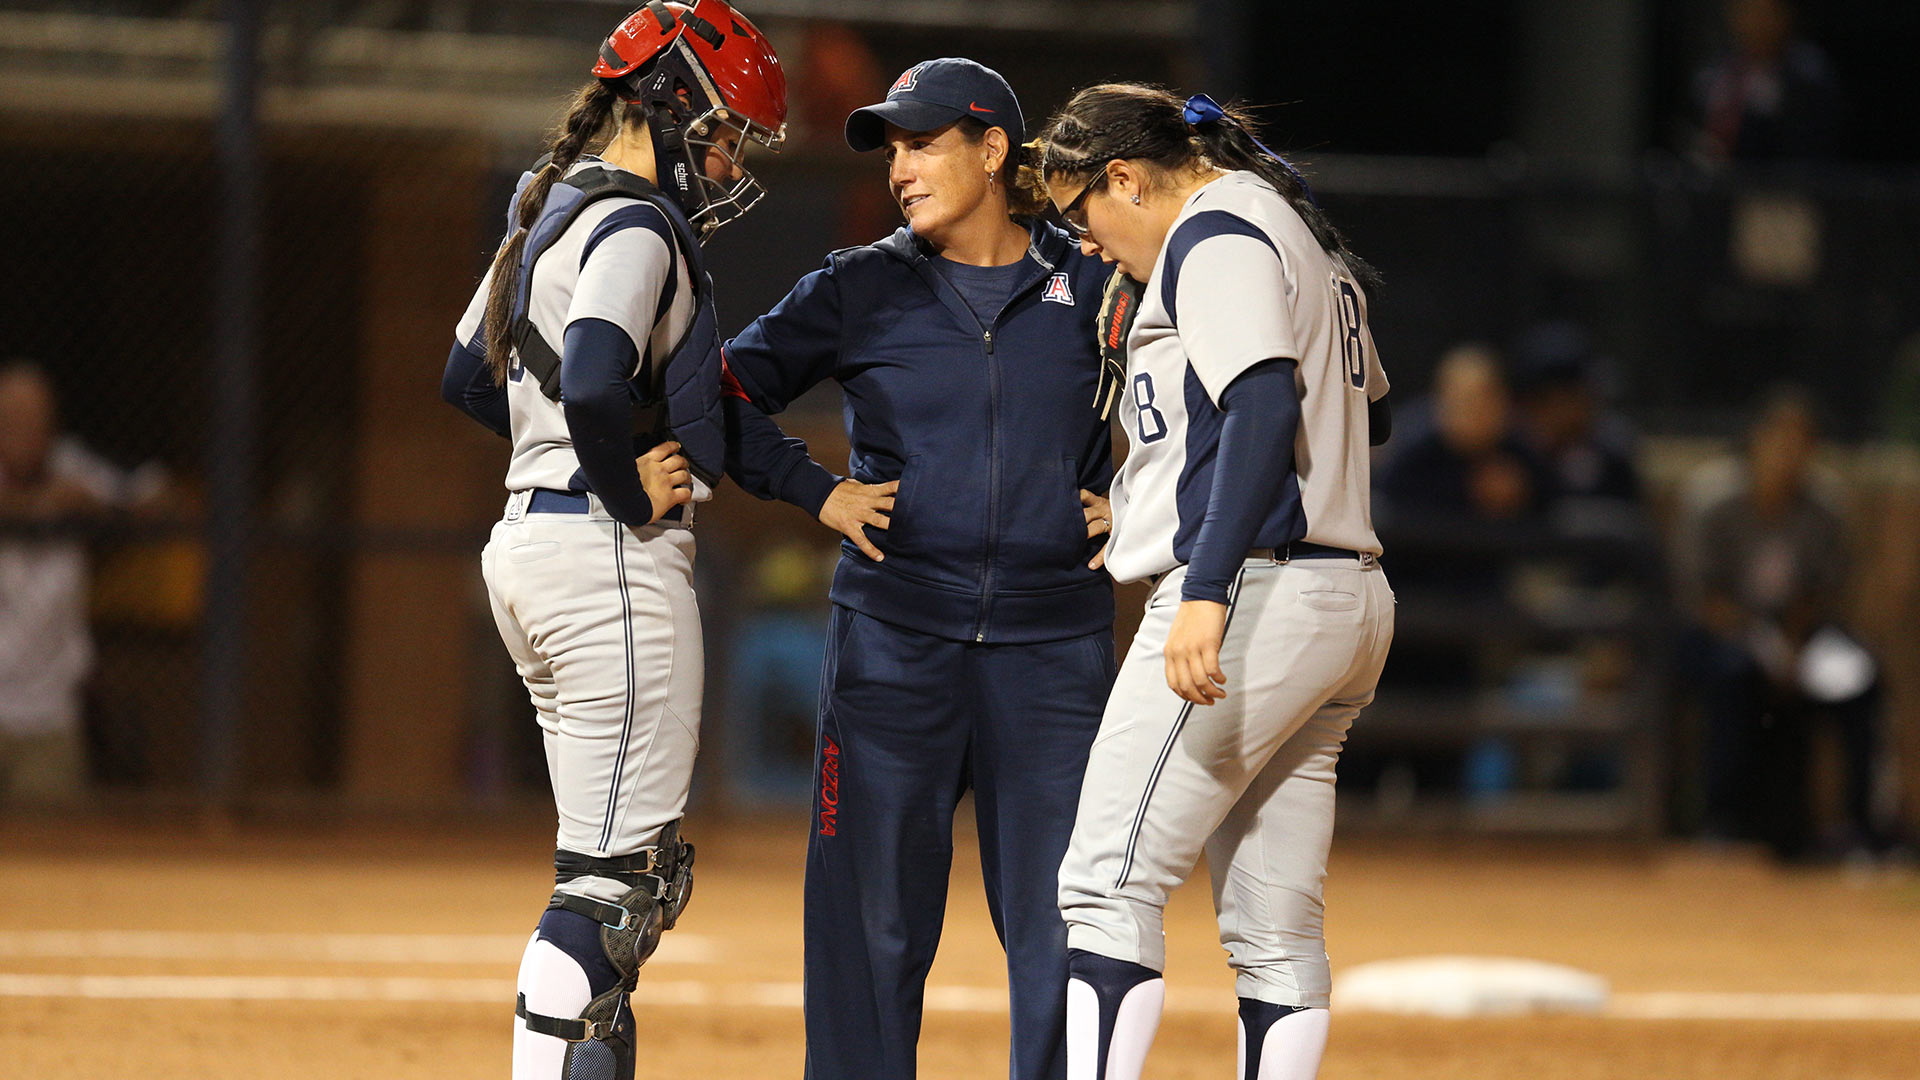 Stacy Iveson, UA Director of Recruiting-Operations for softball.